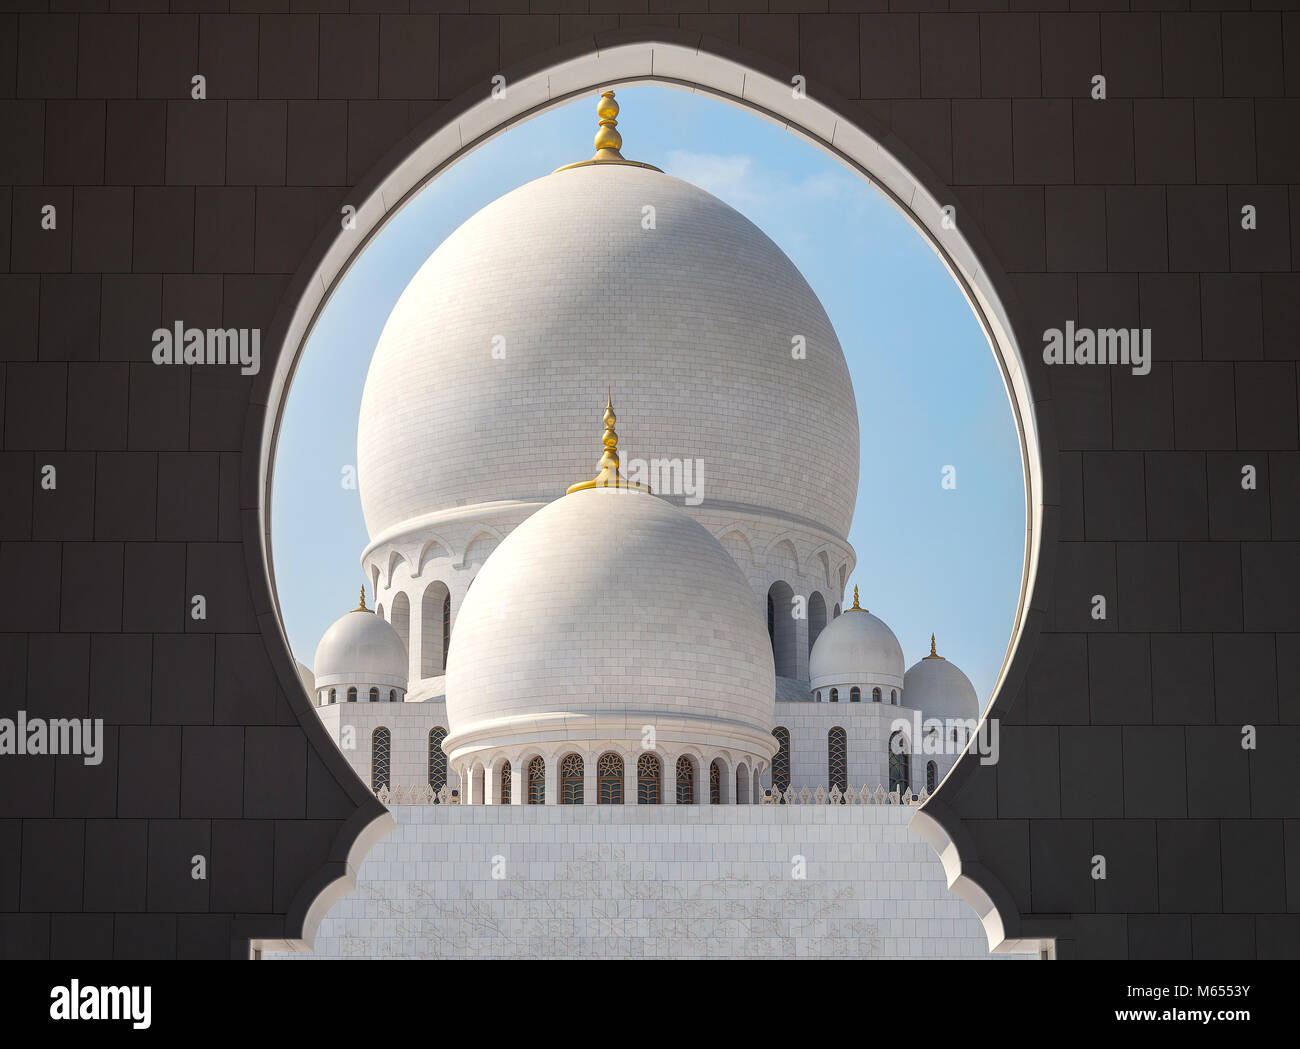 28th December 2017 - Abu Dhabi, UAE. Beautiful architecture and patterns of Sheikh Zayed mosque. Stock Photo